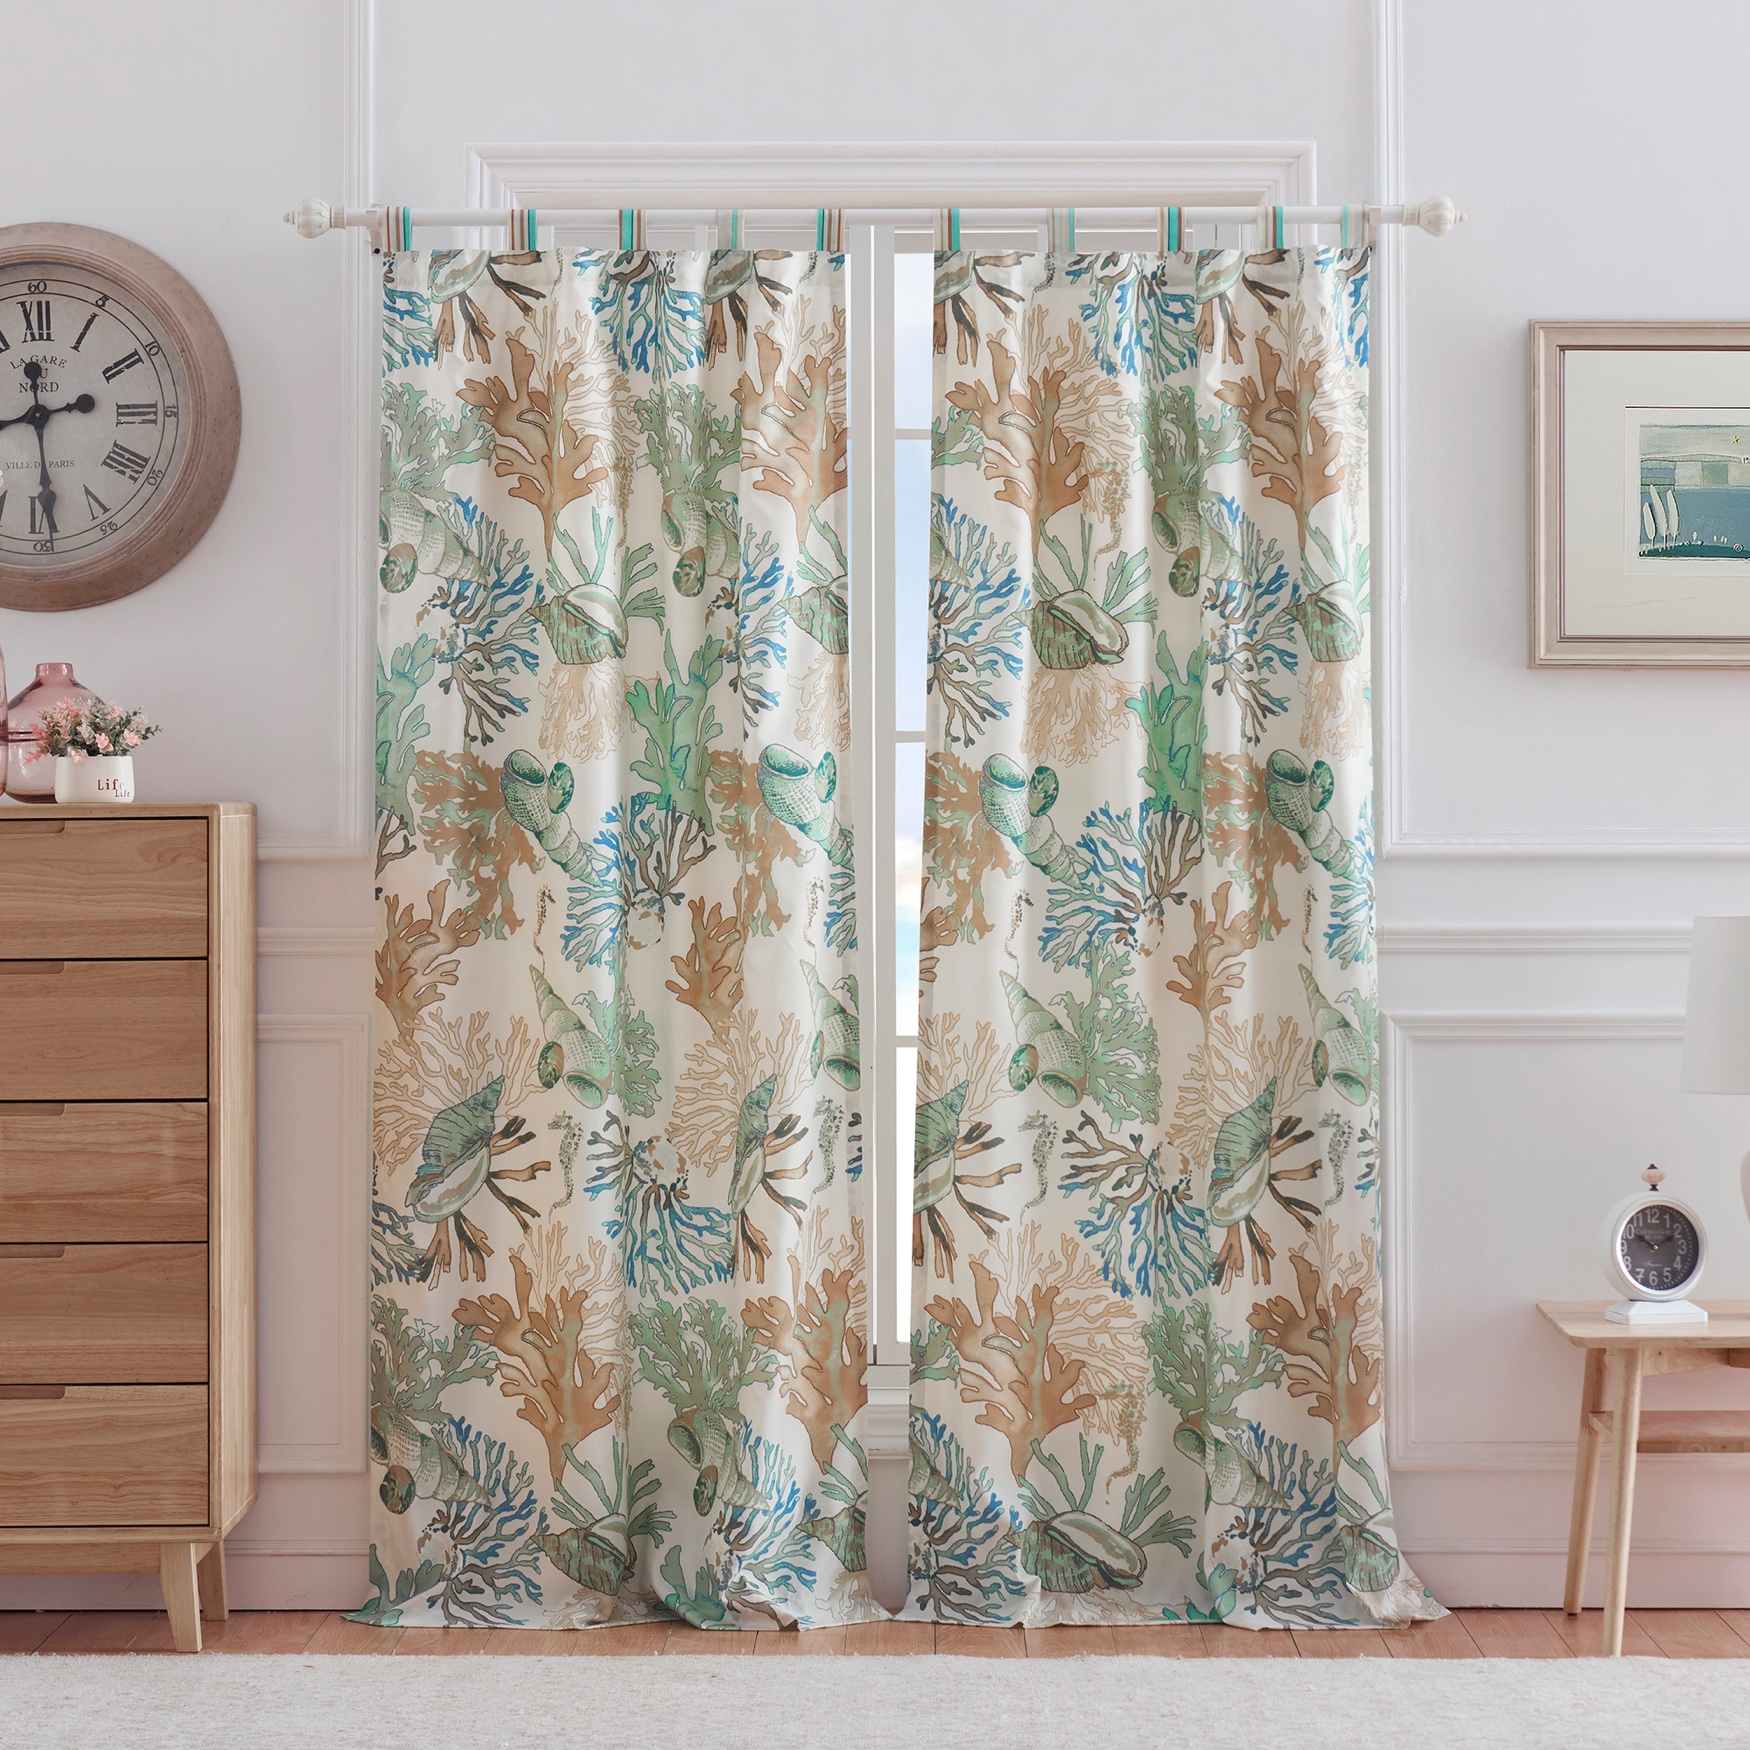 Atlantis Jade Curtain Panel Pair by Barefoot Bungalow, JADE